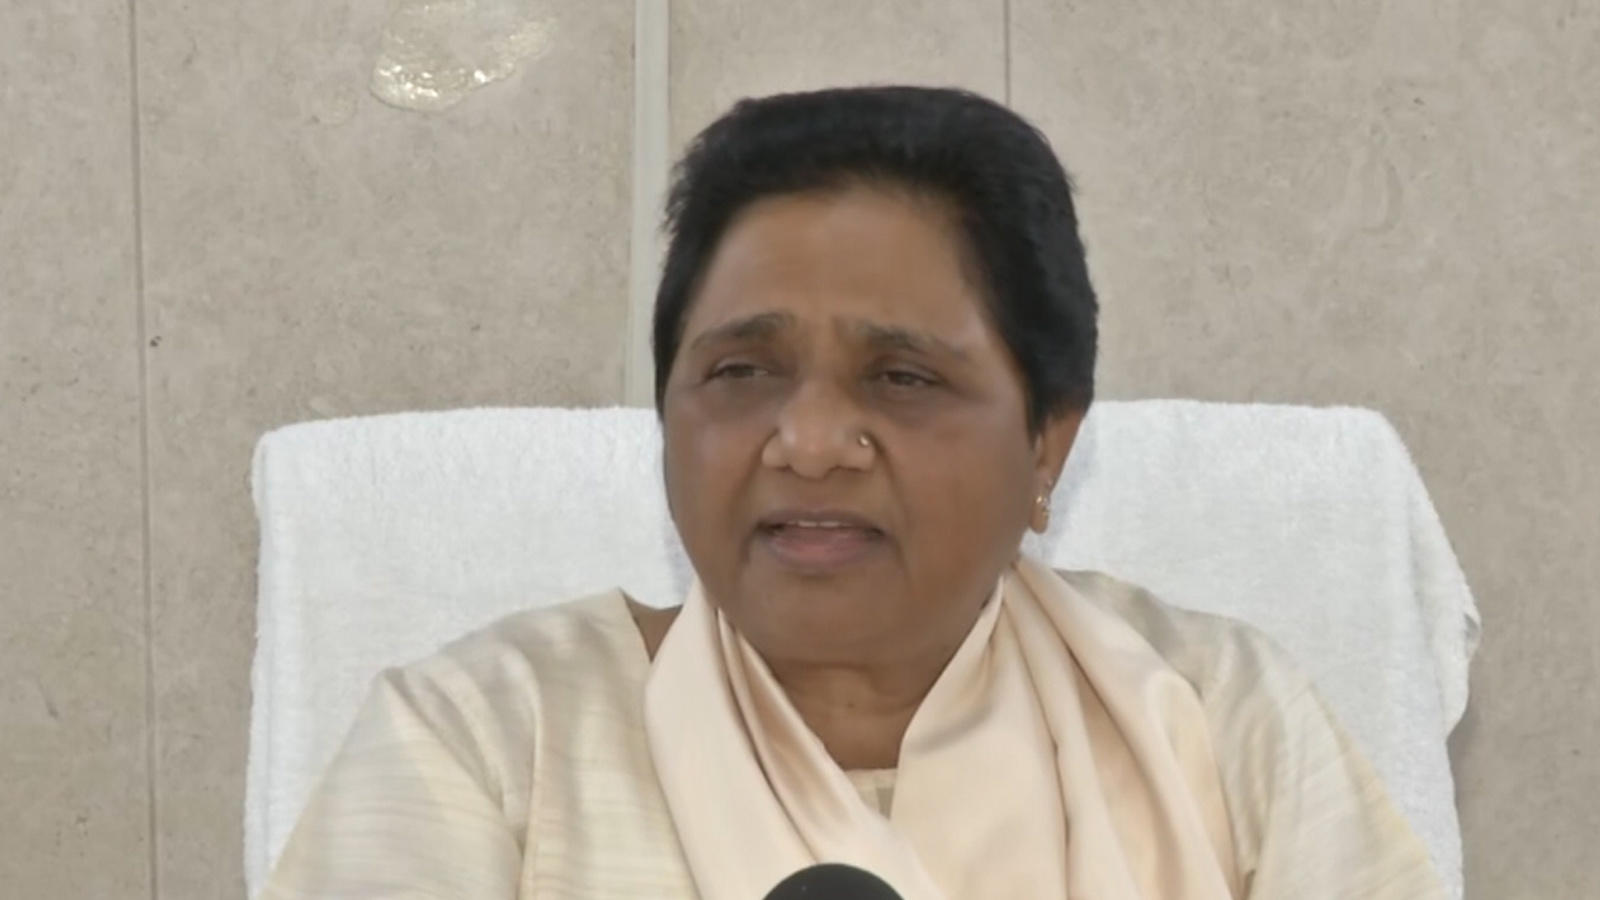 bihar-polls-2020-bsp-to-contest-in-coalition-with-rlsp-regional-parties-mayawati